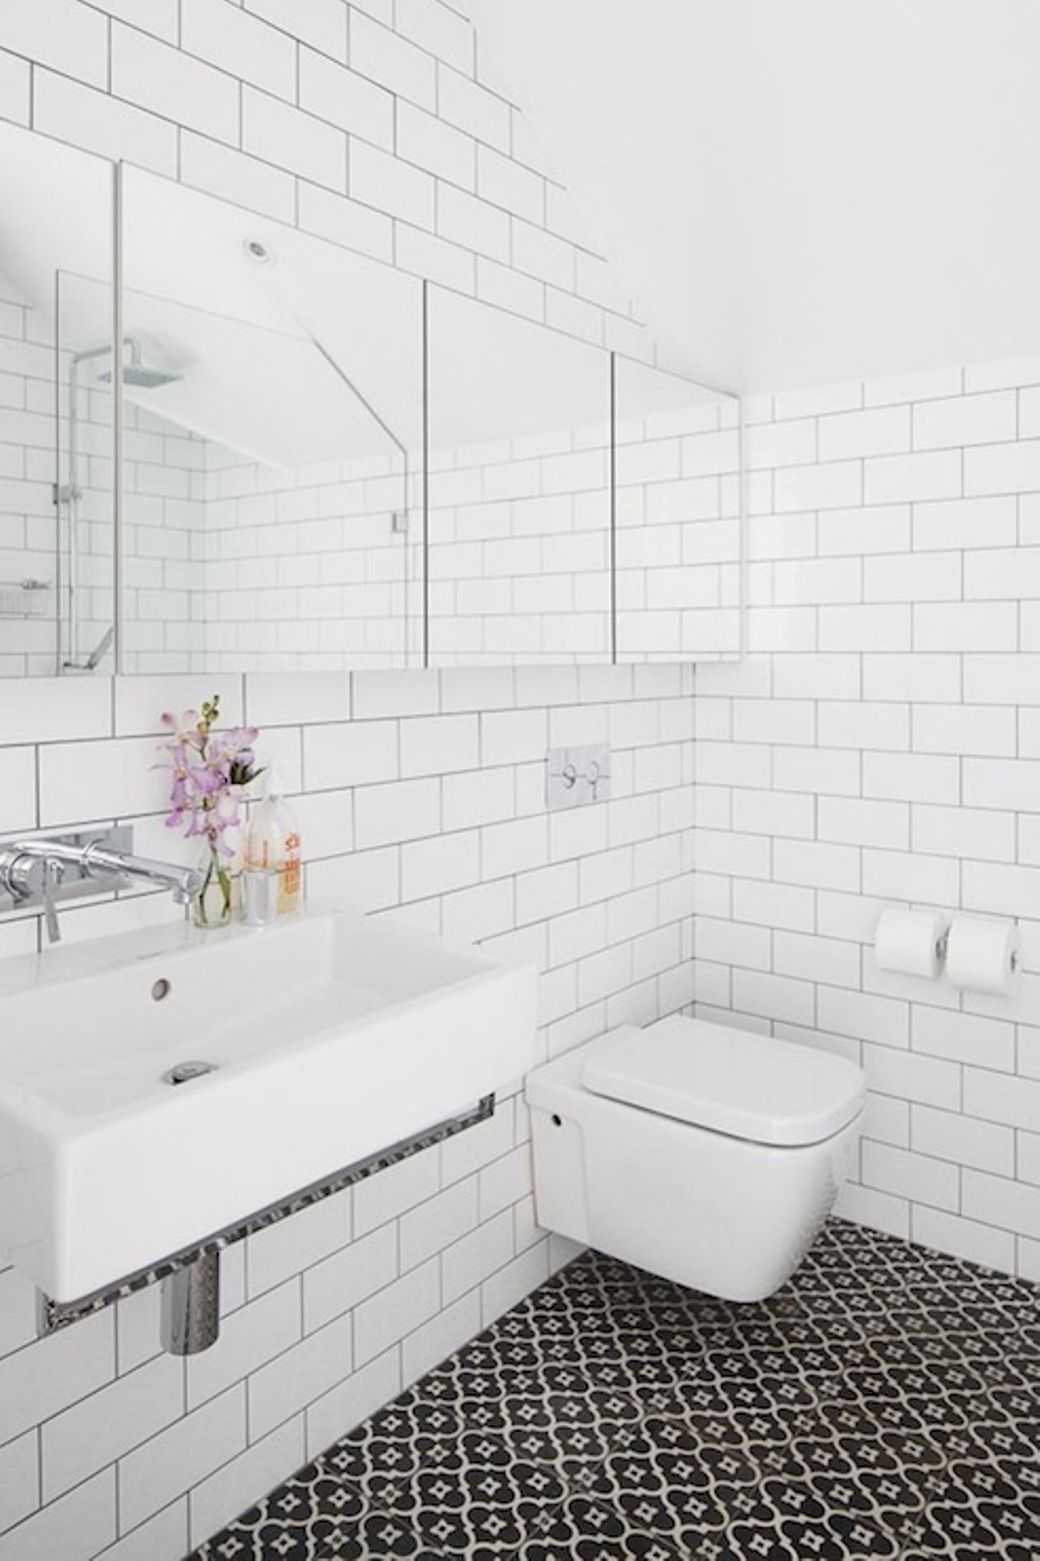 White Subway Tile Bathroom Wall | 6041 interior | Pinterest | Subway ...